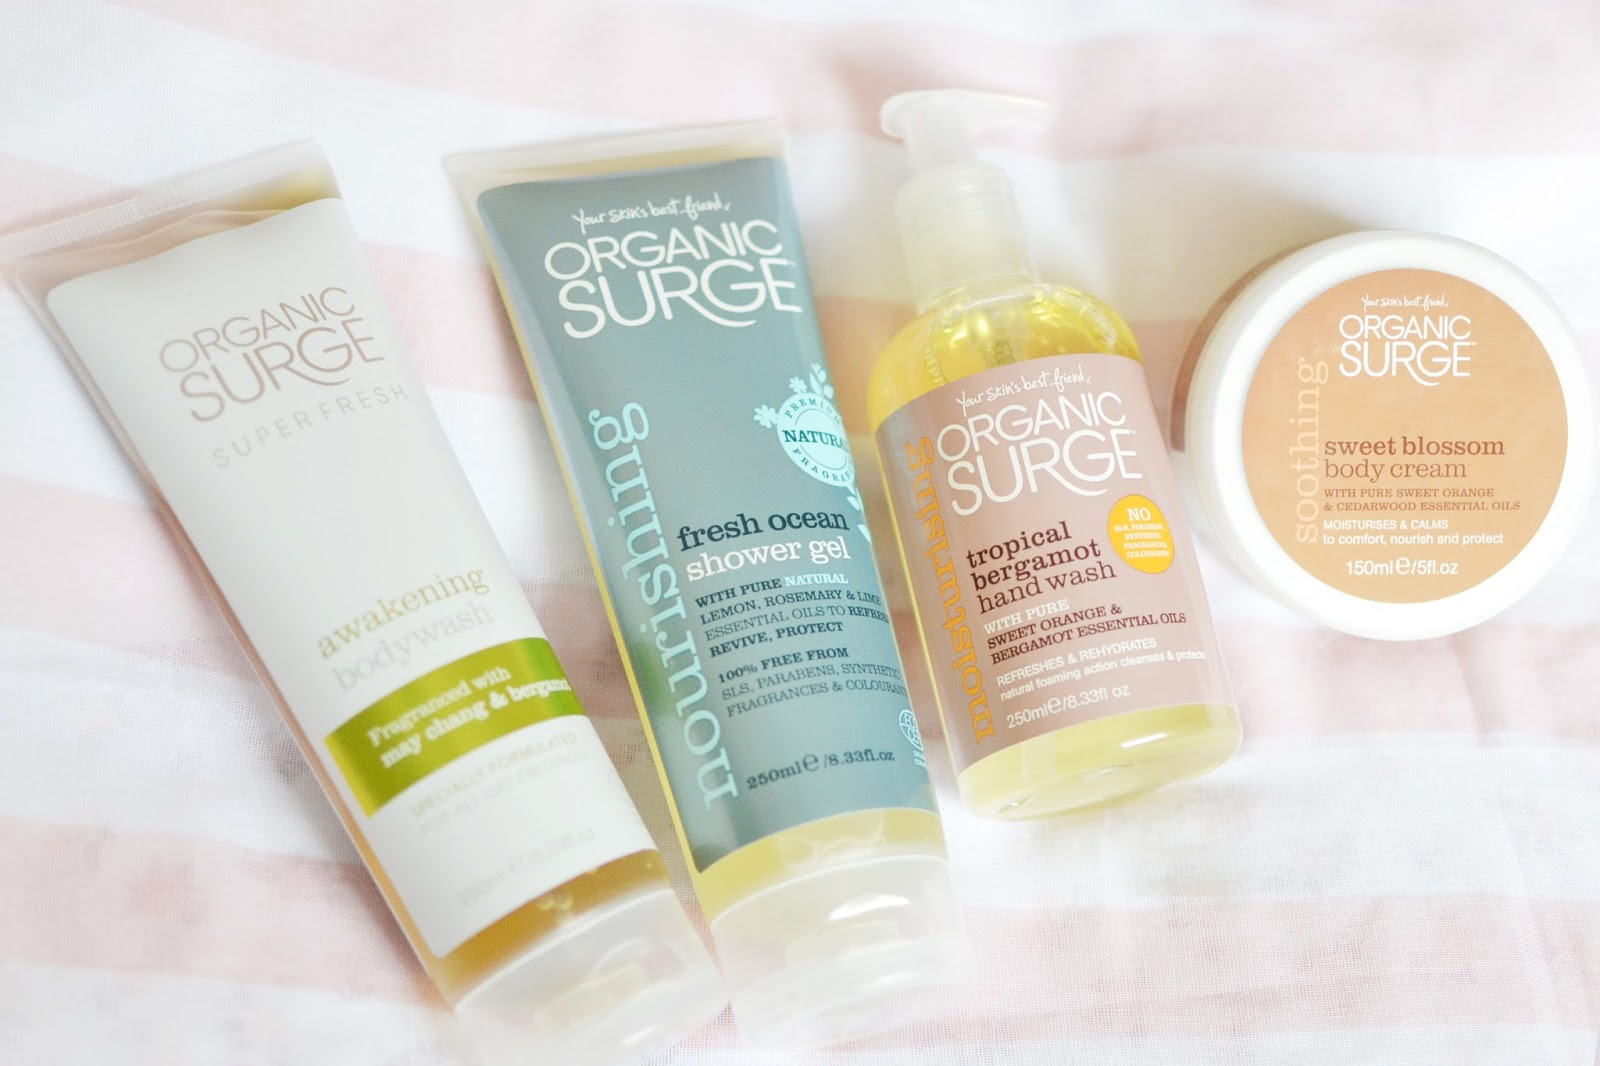 Organic surge products, organic surge review, natural and organic beauty products